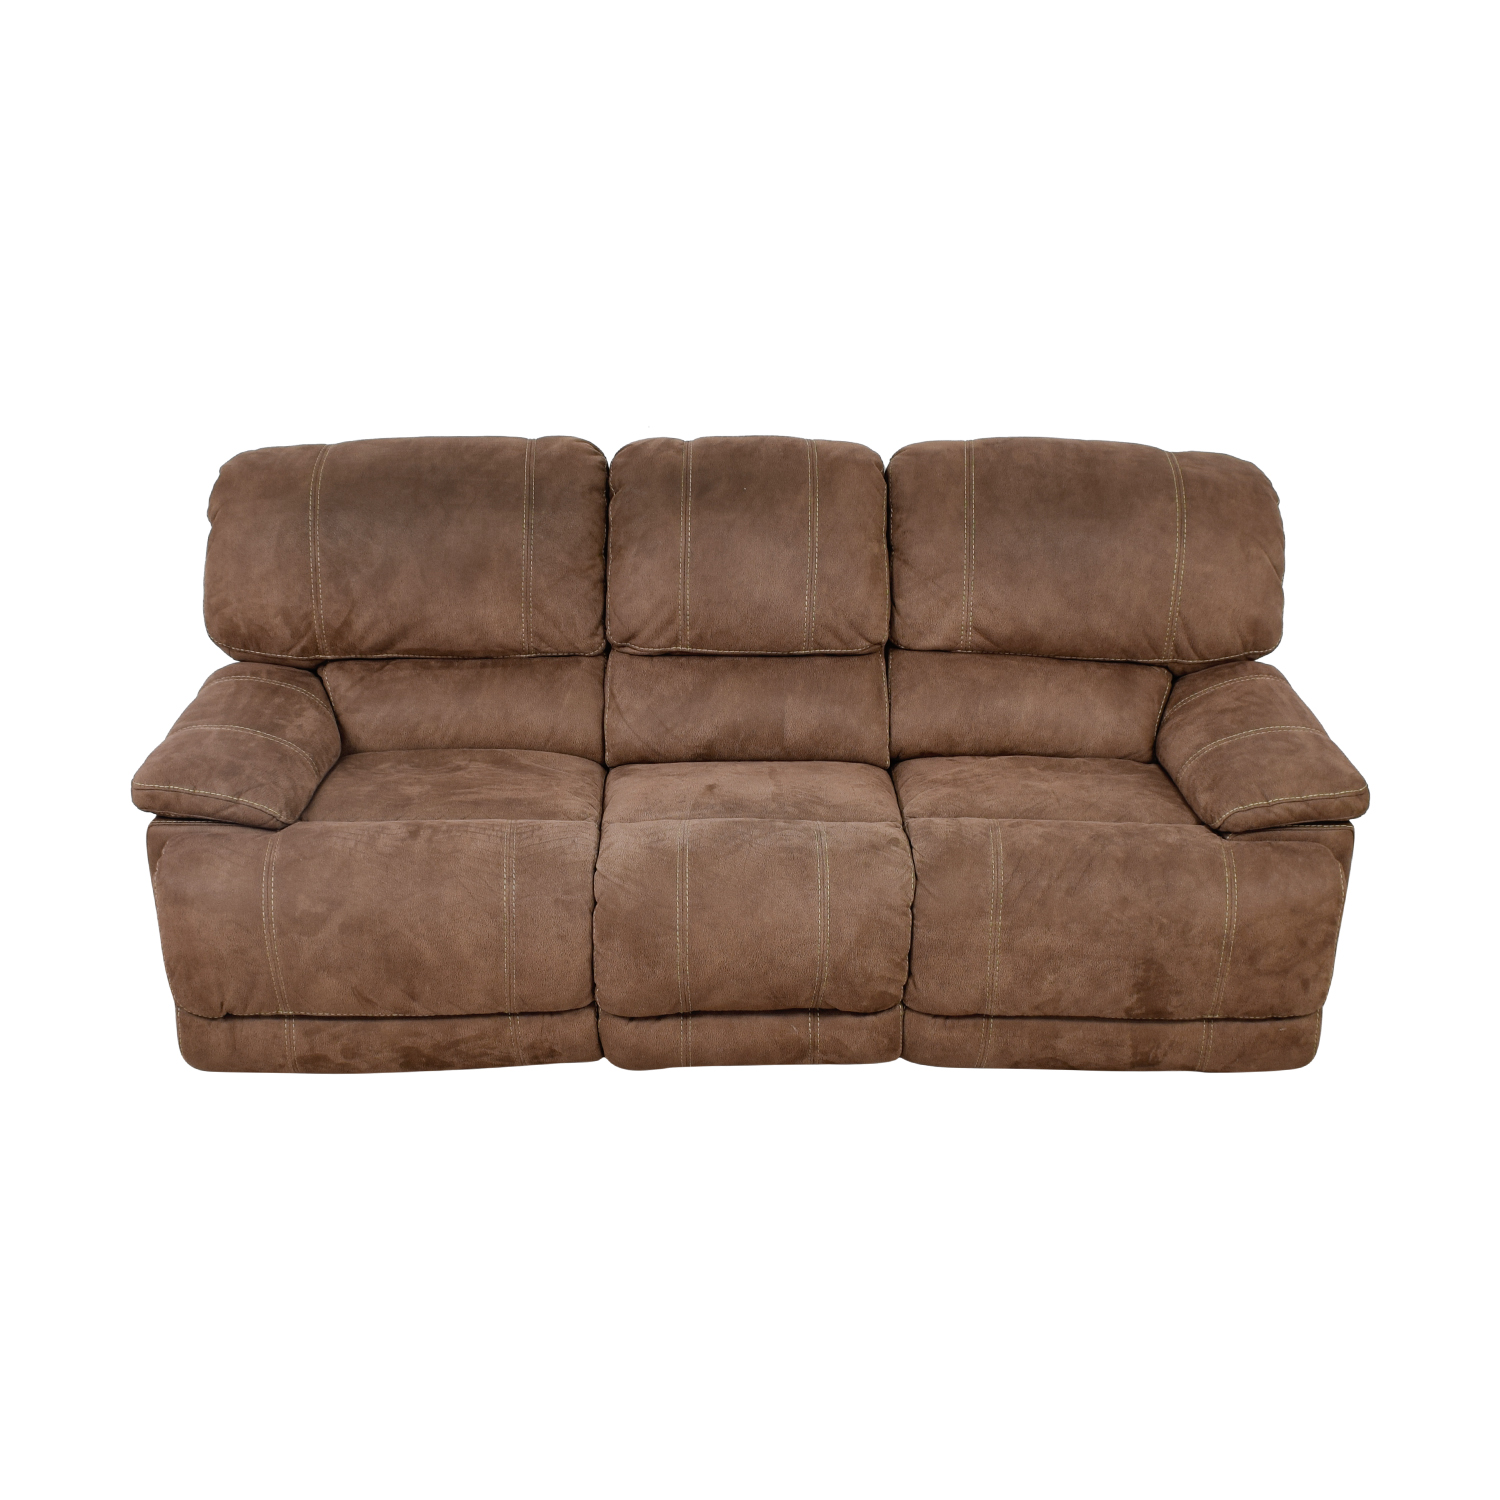 buy Brown Three-Cushion Recliner Sofa